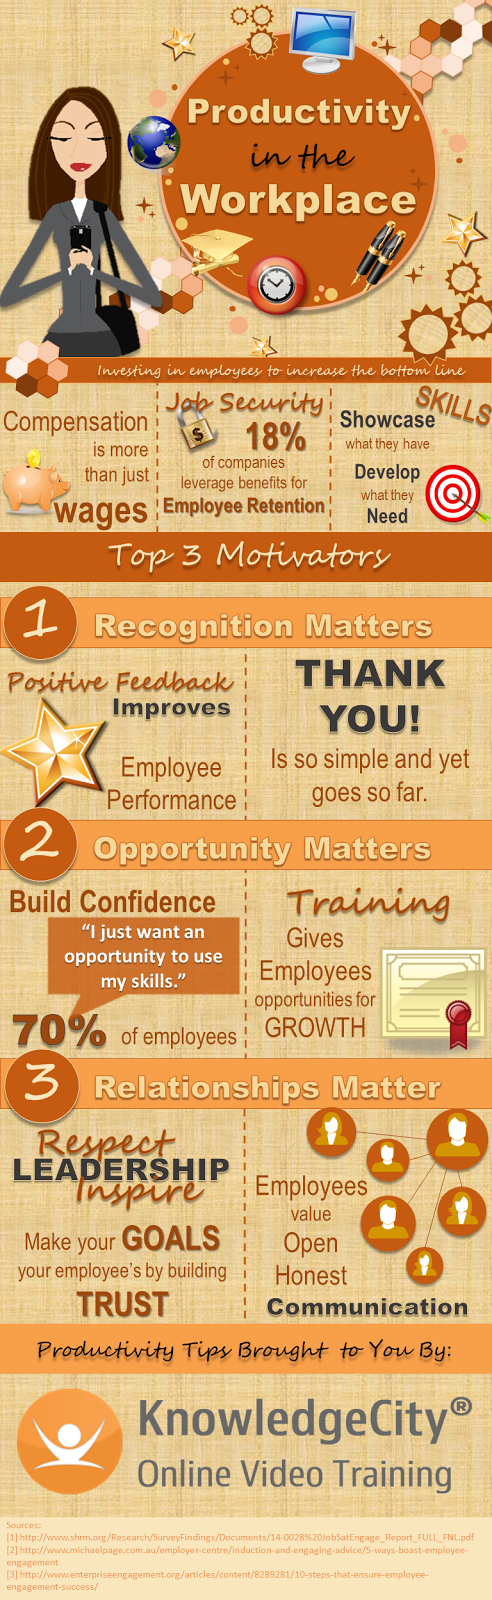 how does training and development improve employee motivation increase productivity and increase ret 6 effective ways to enhance workplace productivity  that significantly increase productivity in a workplace  hardware and software solutions that can improve employee productivity.